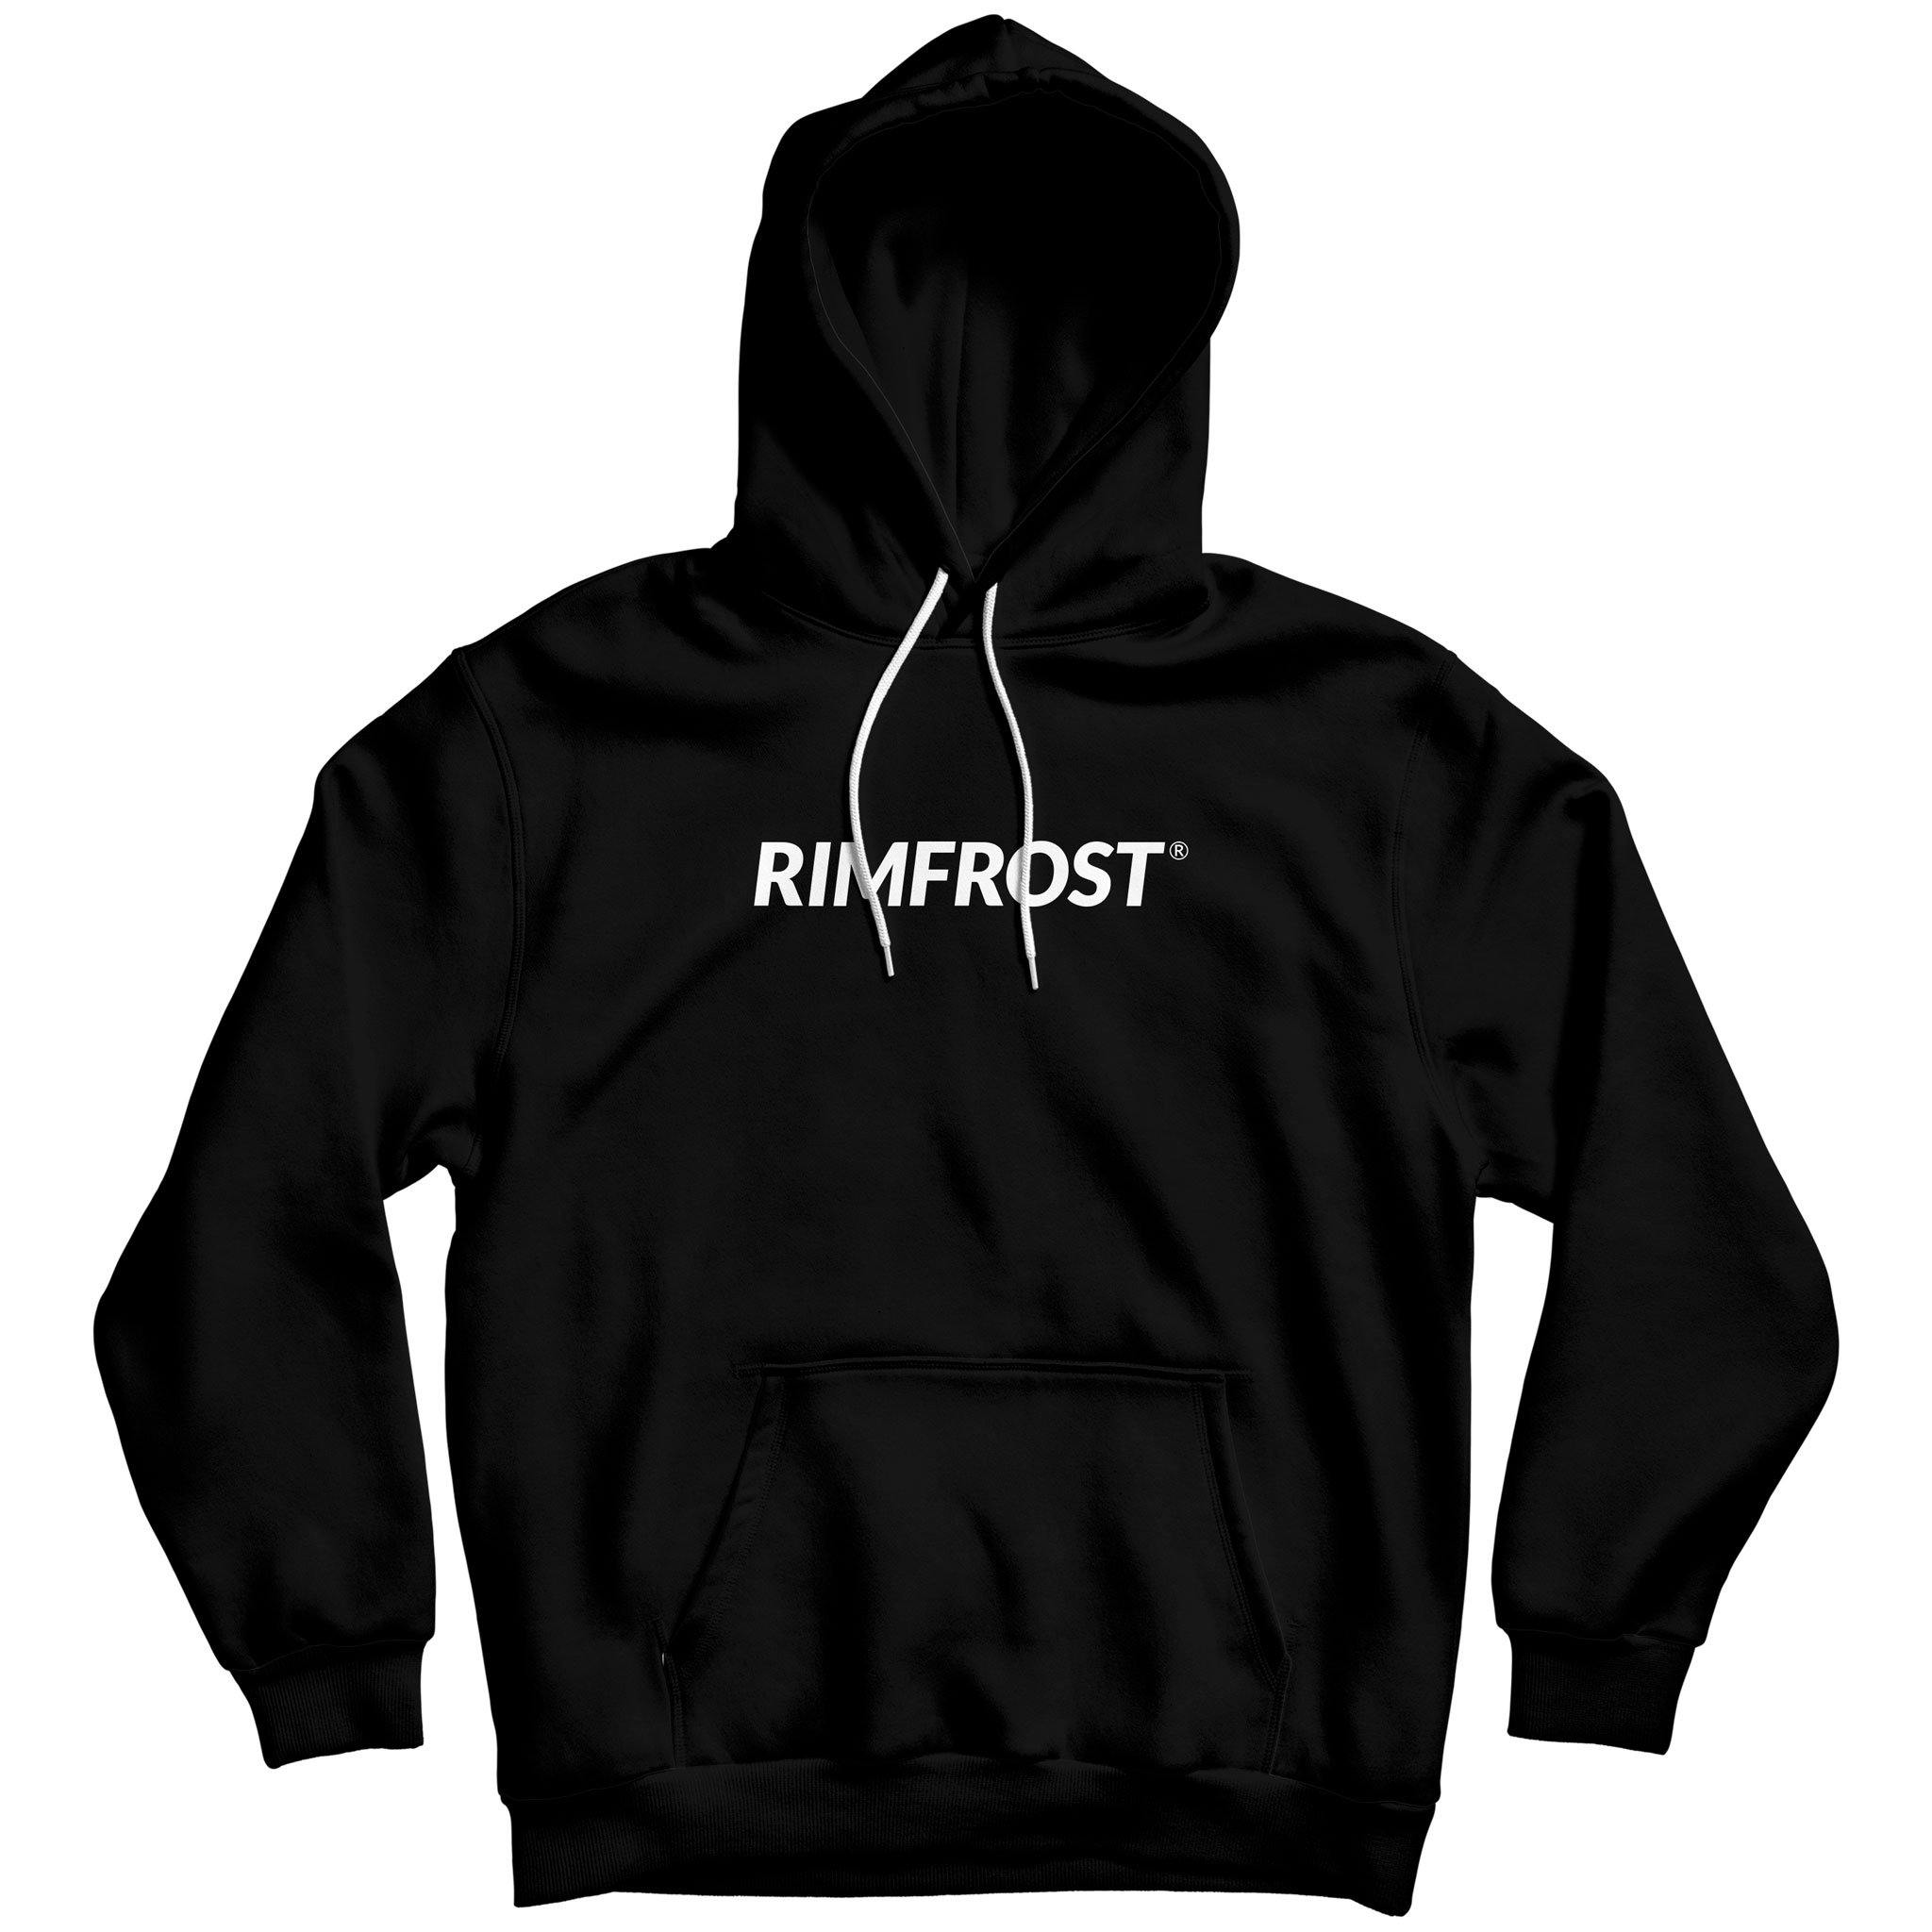 Sign Black Hoodie - RIMFROST®